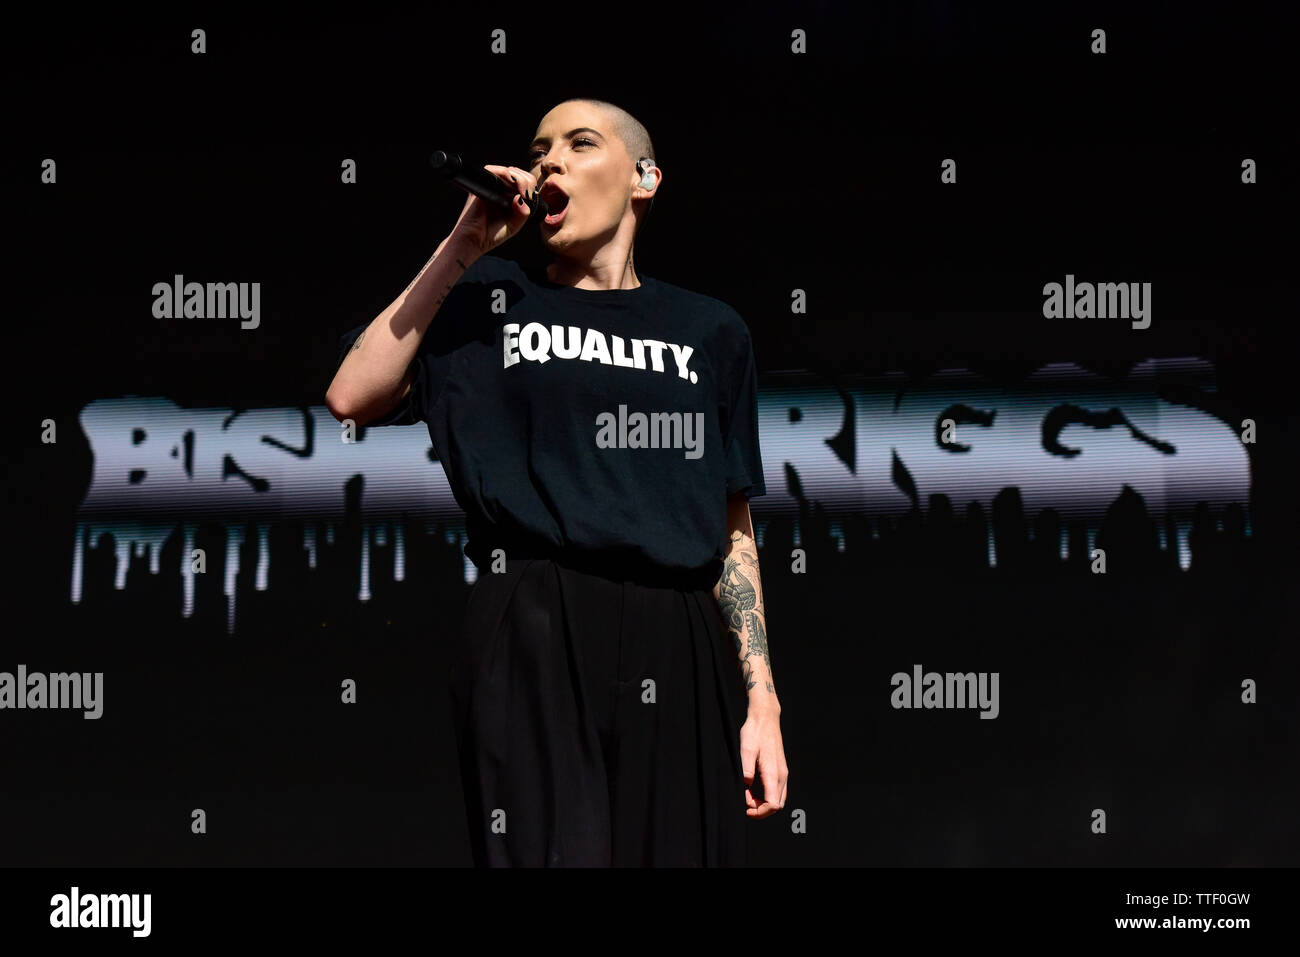 Bishop Briggs performing on stage at the BottleRock Festival 2019, Napa Valley, California. Stock Photo